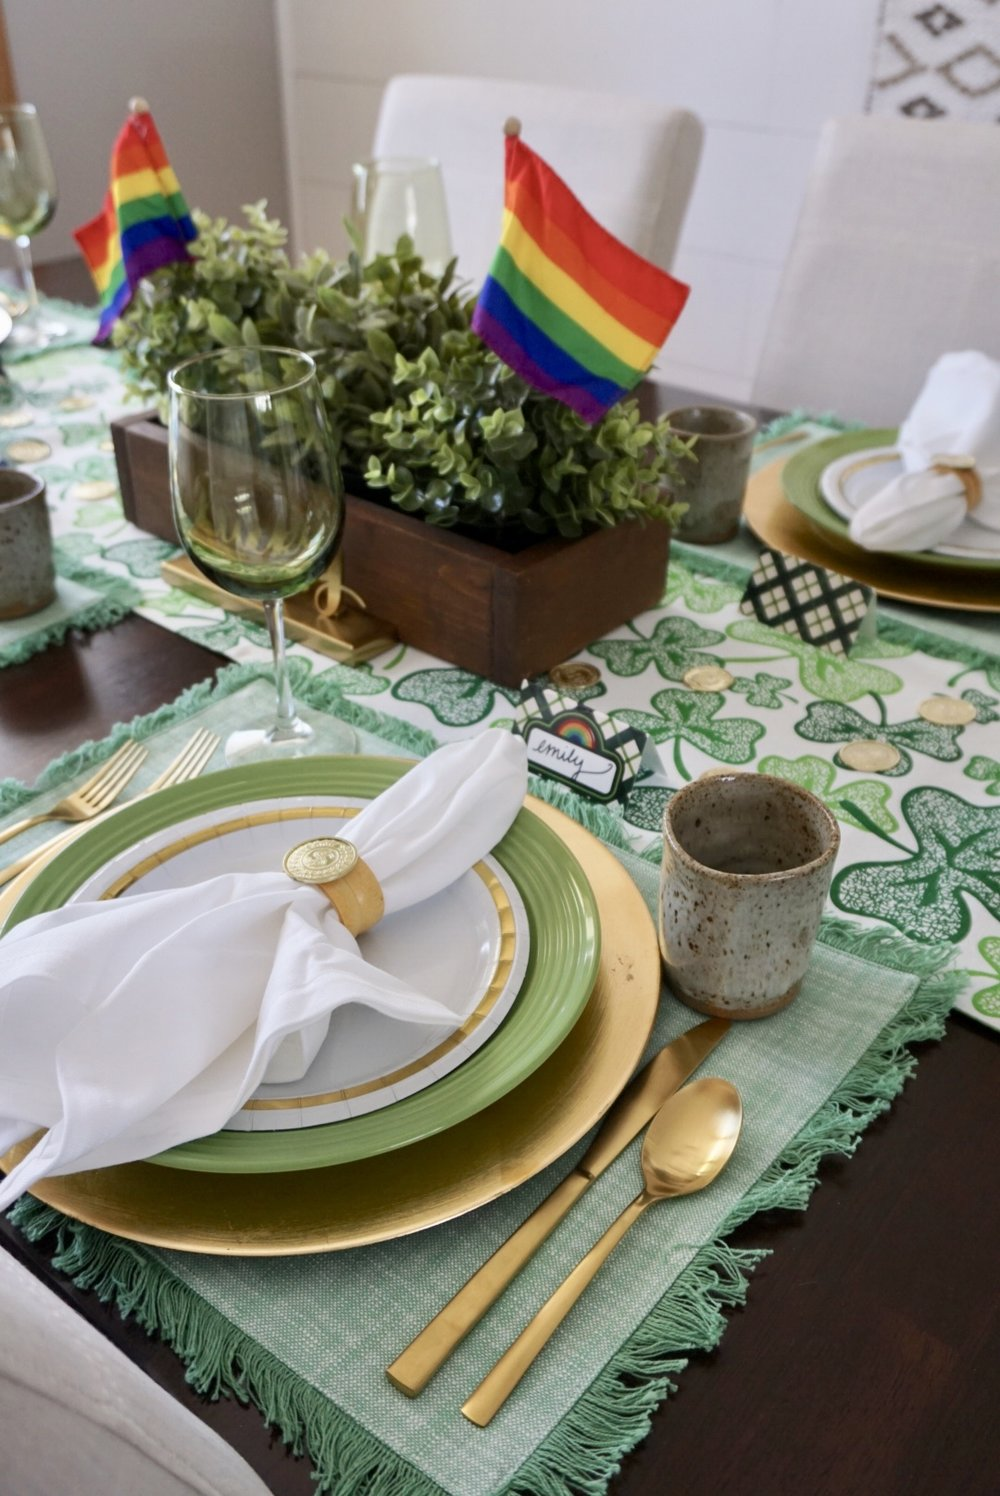 St. Patrick's Day place setting on a budget with items from Target, Dollar Tree, and thrift stores!